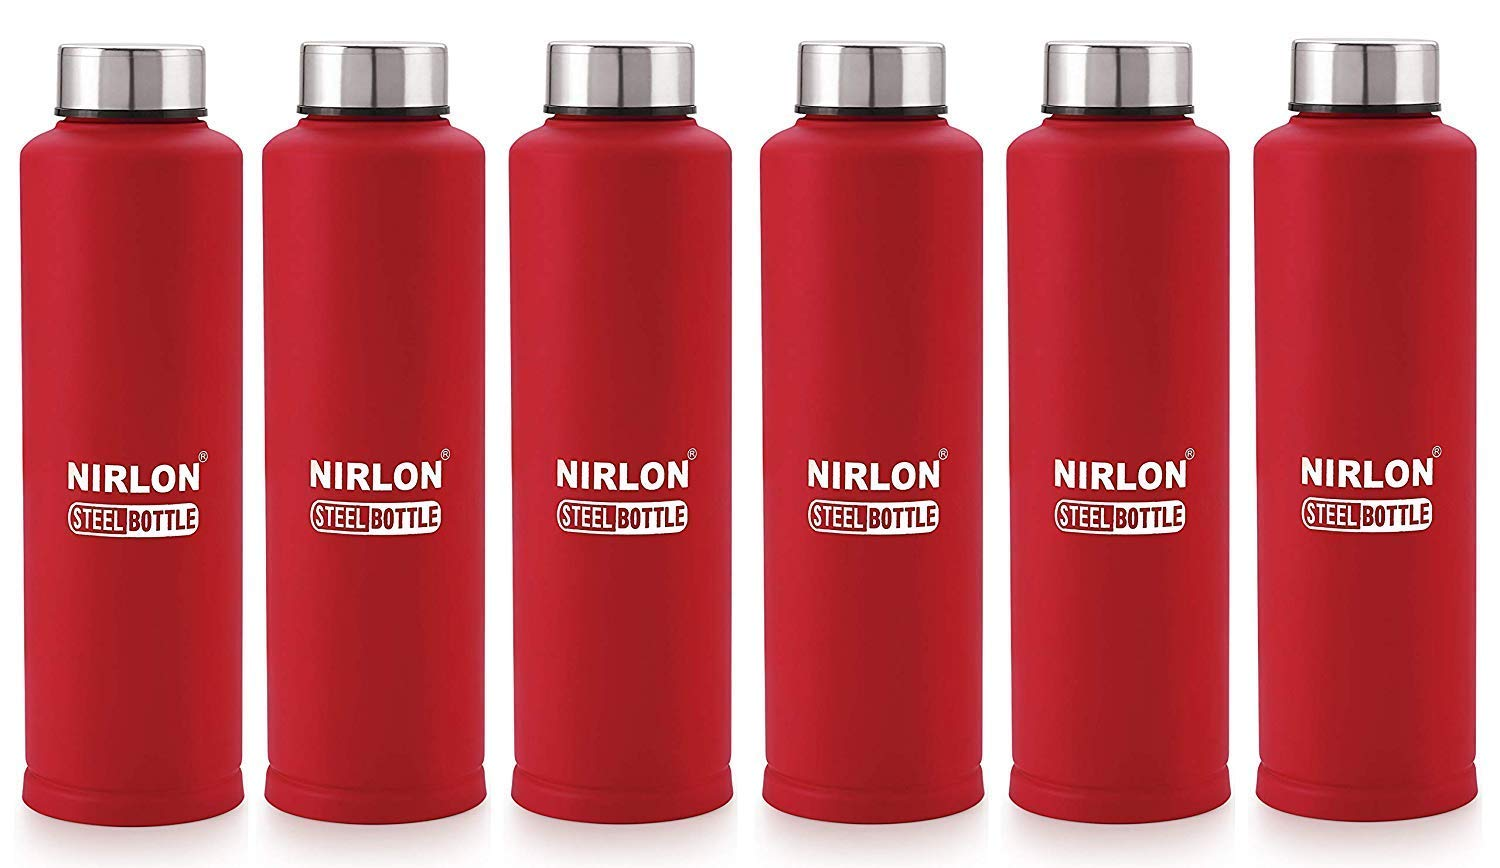 Stainless Steel Water Bottle with Mat Red Color, 1 Litre, 6 Piece (Red)